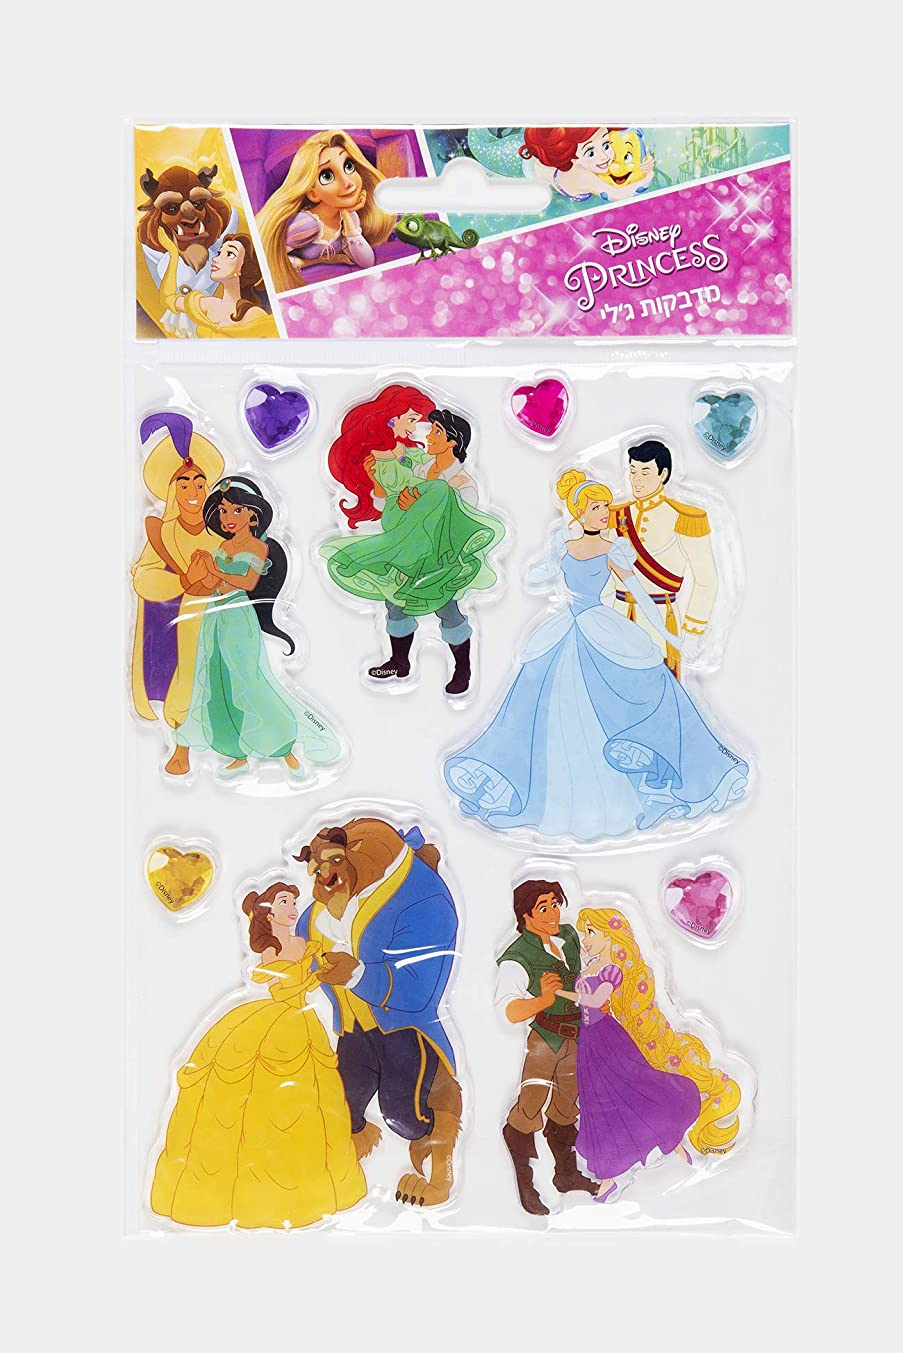 Disney Beautifully Illustrated Princes and Princesses Collection Jelly Removable Stickers Snow White, Belle, Ariel, Jasmine, Cinderella, Rapunzel, for Art Windows Cell Phones Albums - Great As Prize